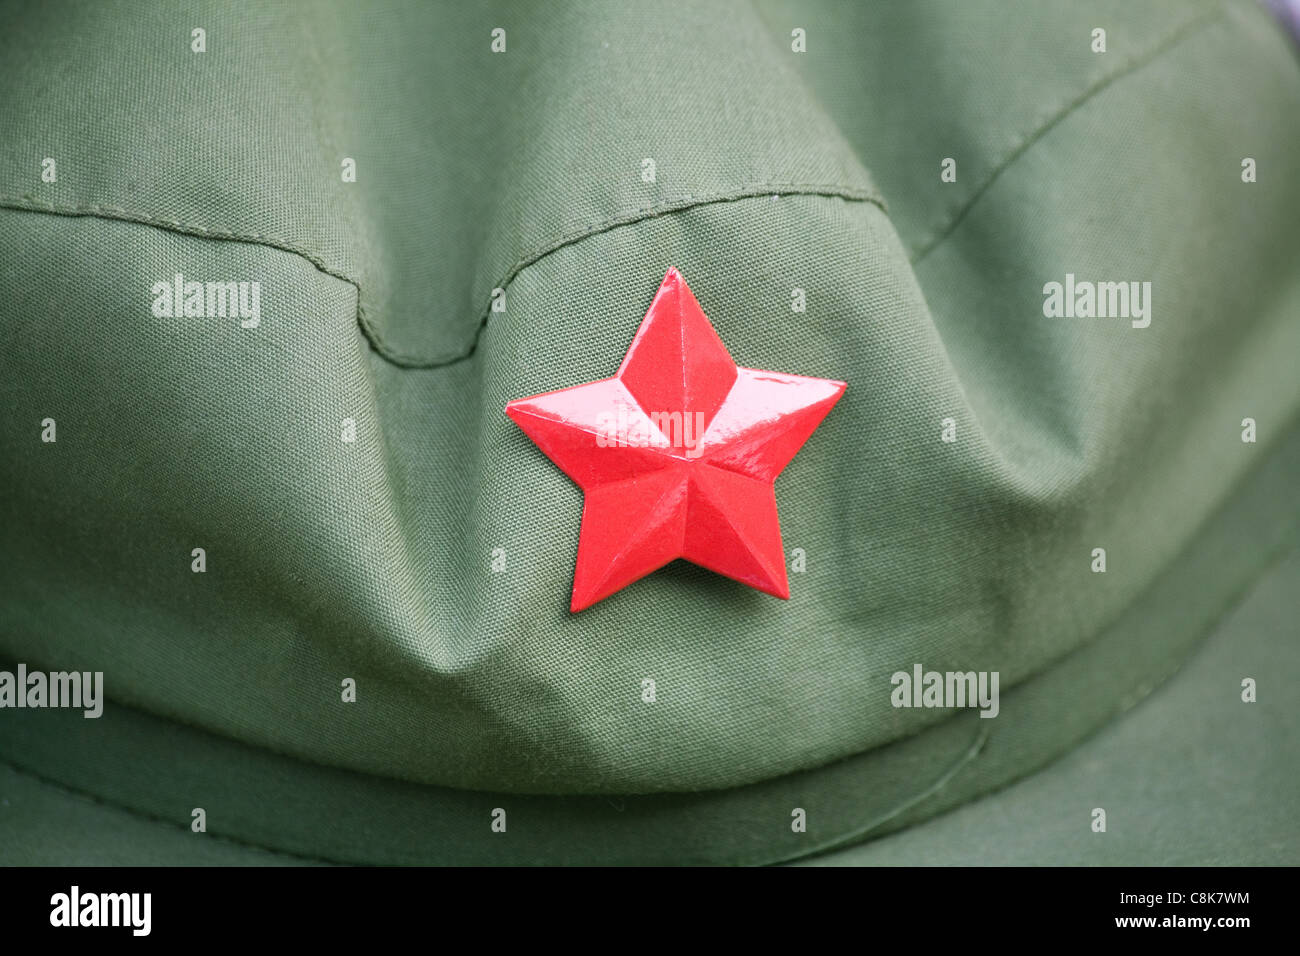 red army cap with a red star - Stock Image